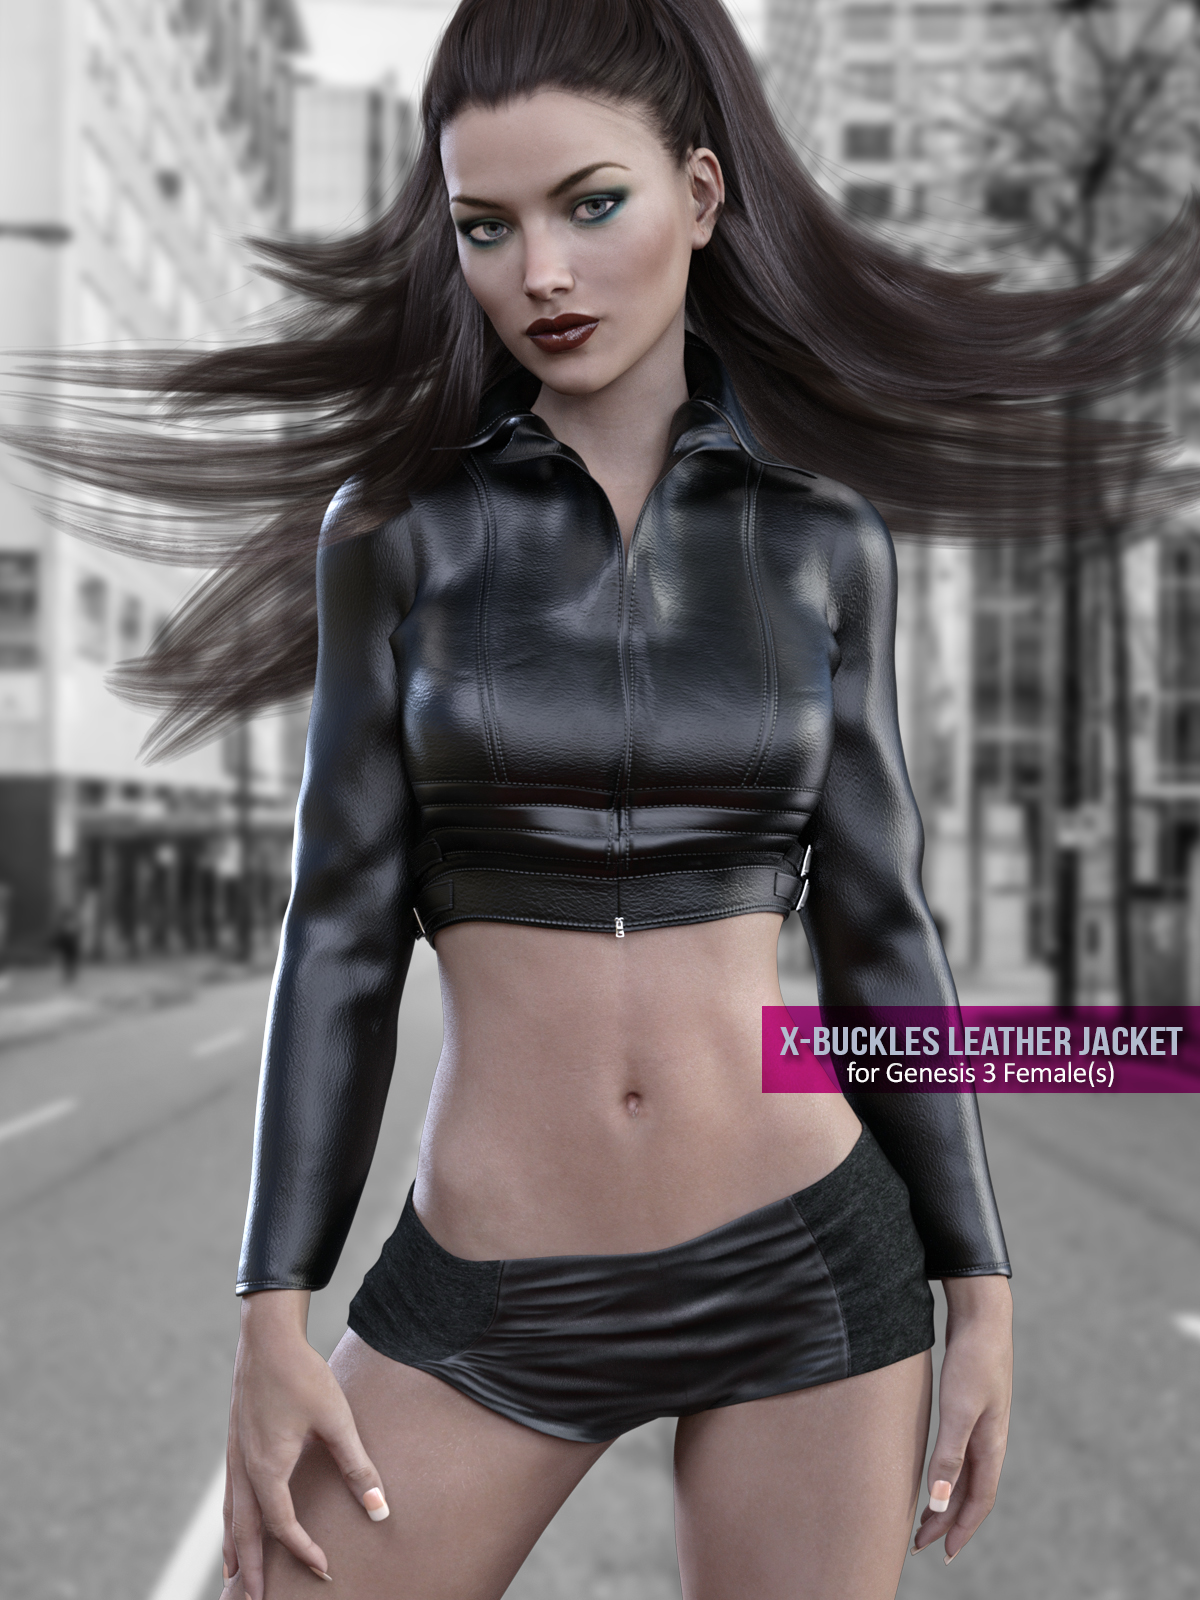 X-Fashion Buckles Jacket Outfit for Genesis 3 Females